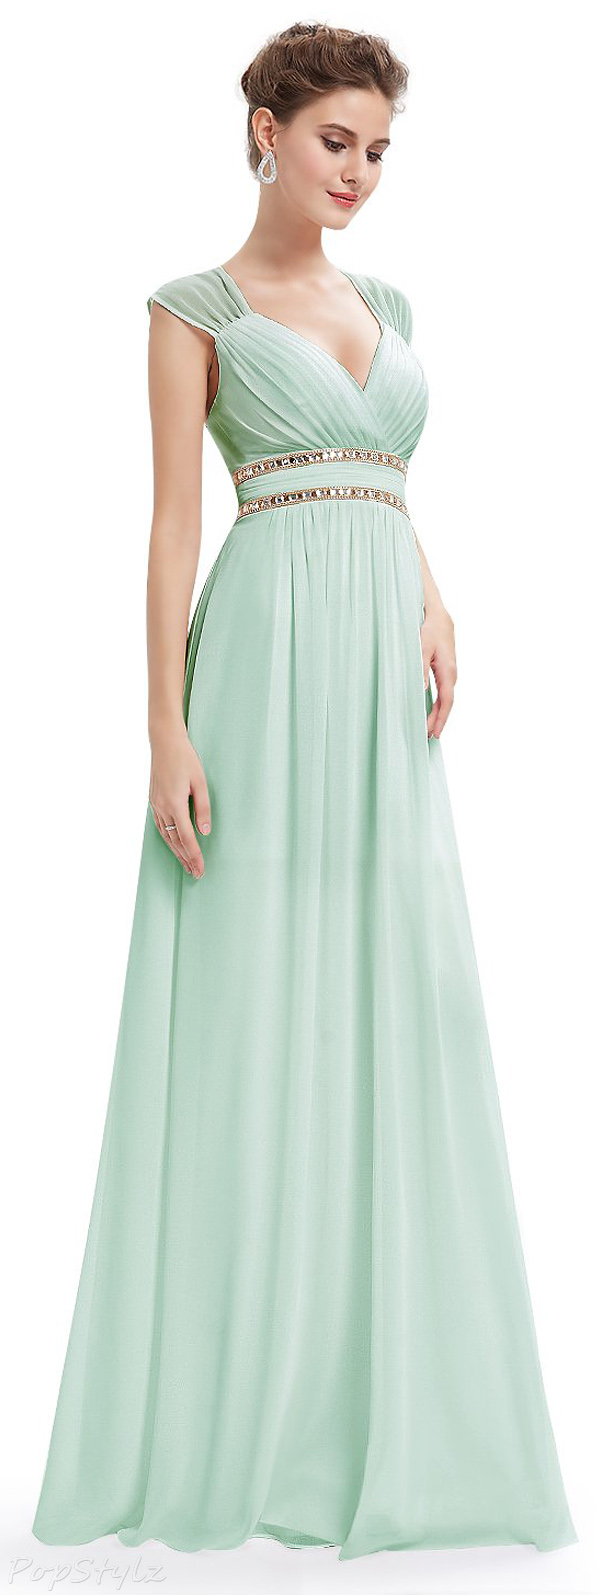 Ever Pretty Sleeveless Grecian Style Evening Dress